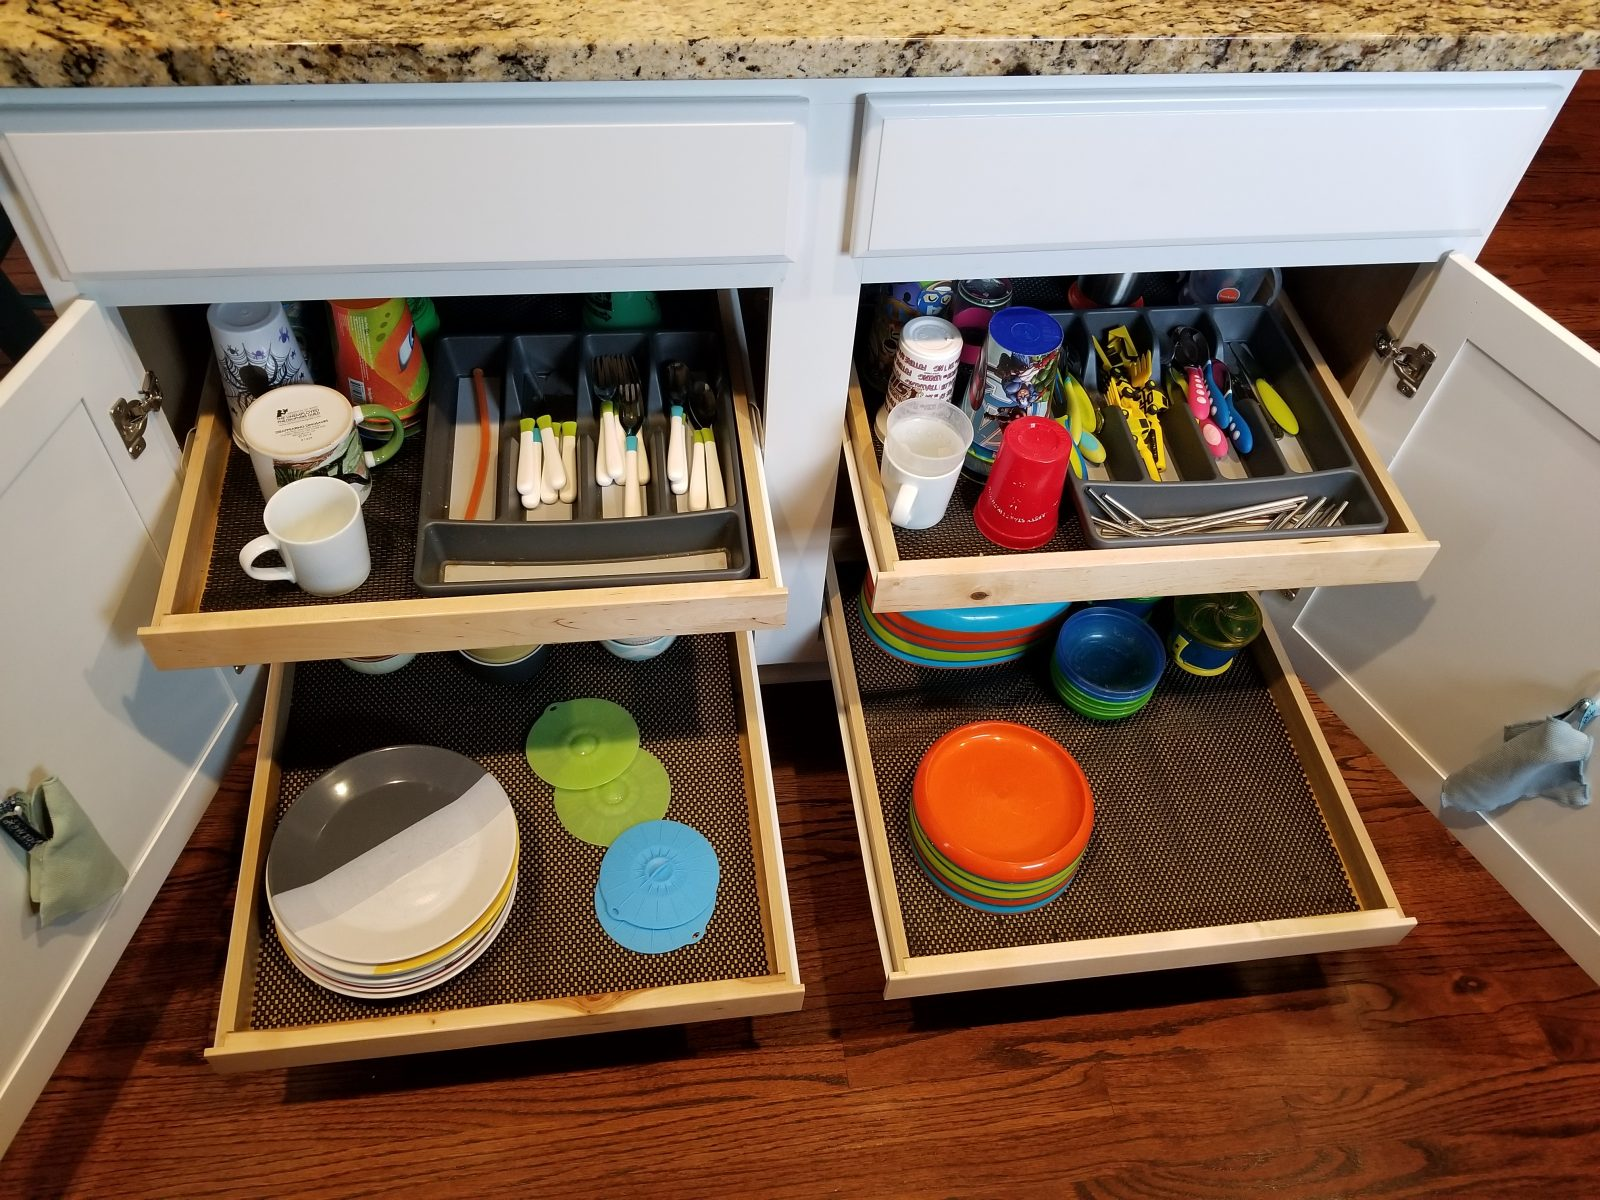 Accessible common kitchen items make your kids more independant.